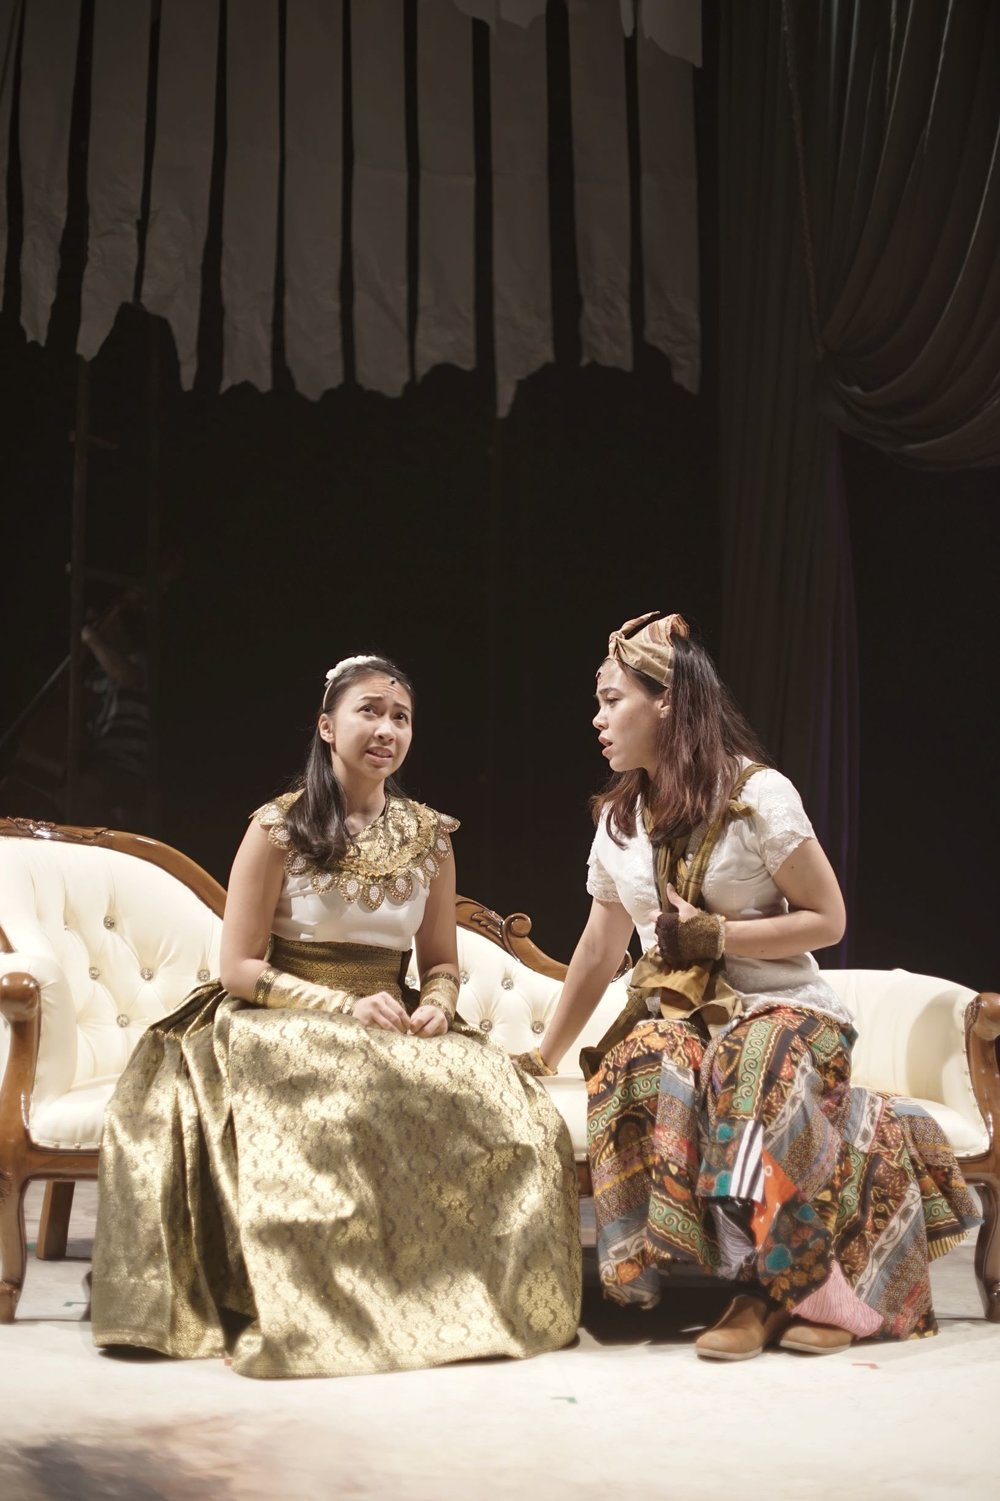 teman musical theater company based in jakarta presented their debut production, stephen sondheim's 'into the woods' - 03.JPG